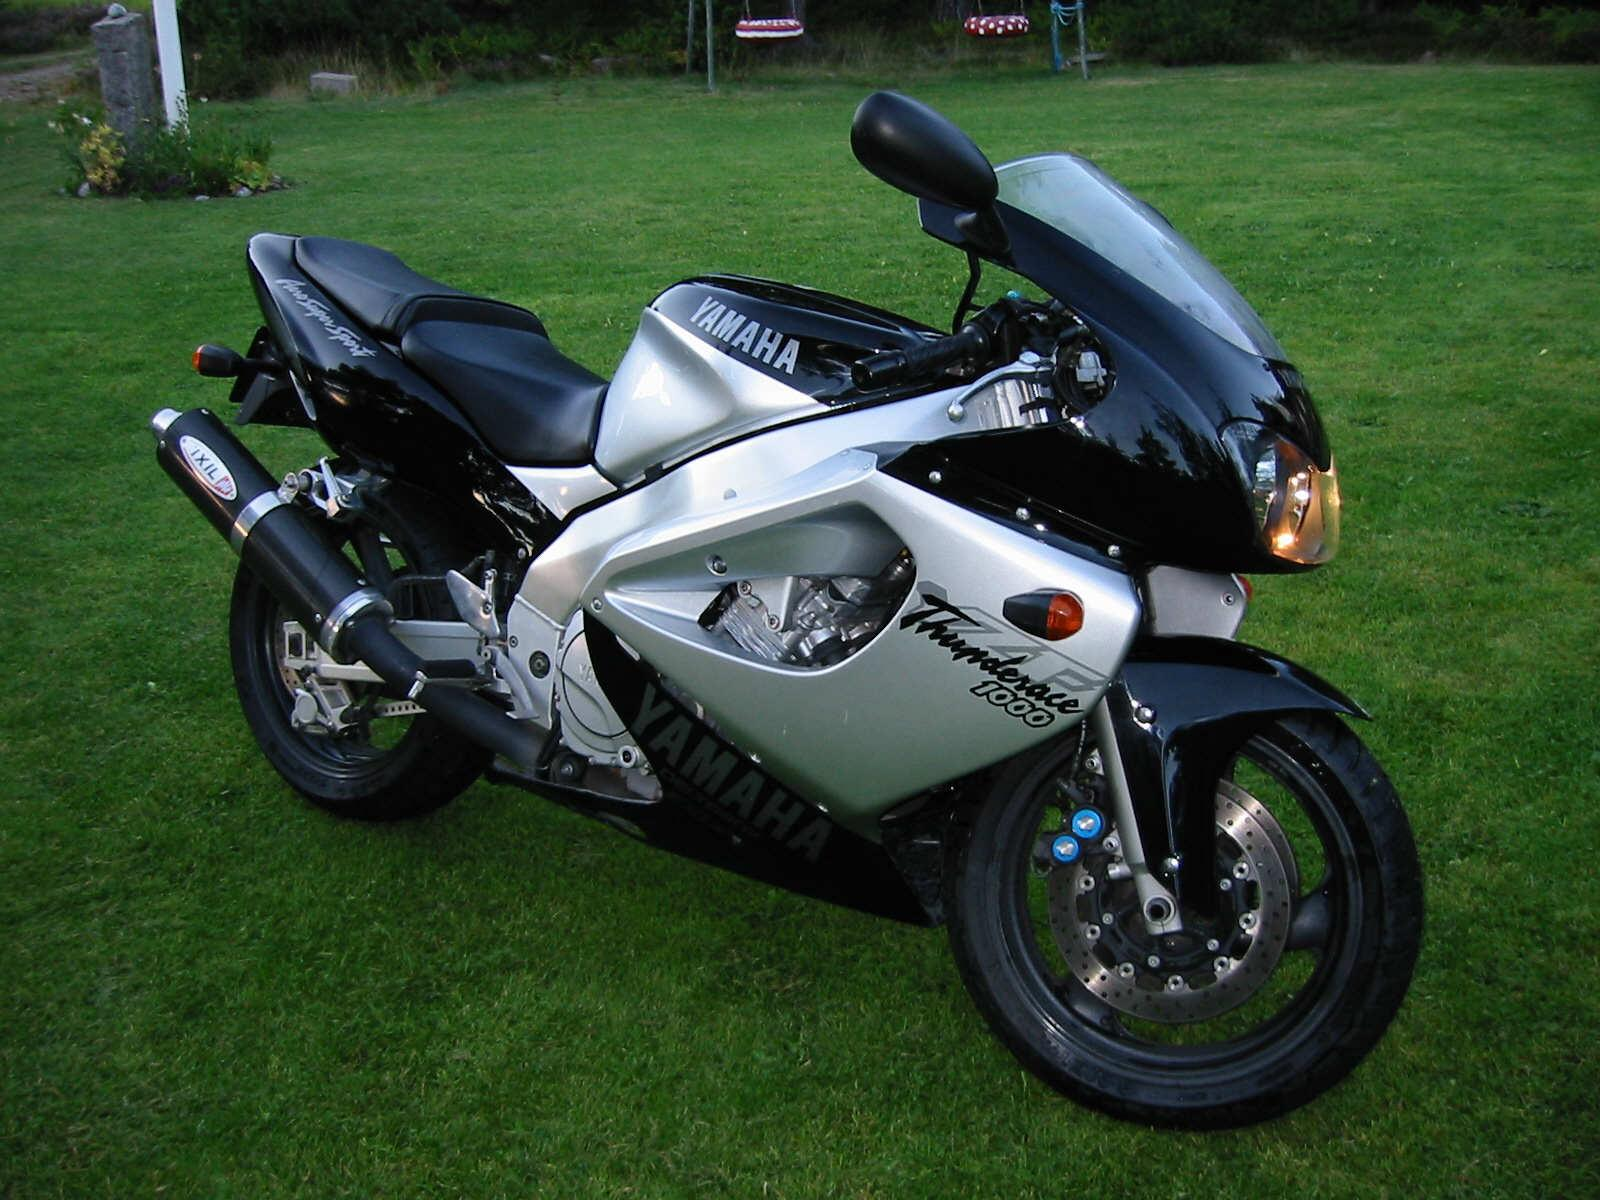 Yamaha YZF1000R Thunderace photos - PhotoGallery with 6 ...